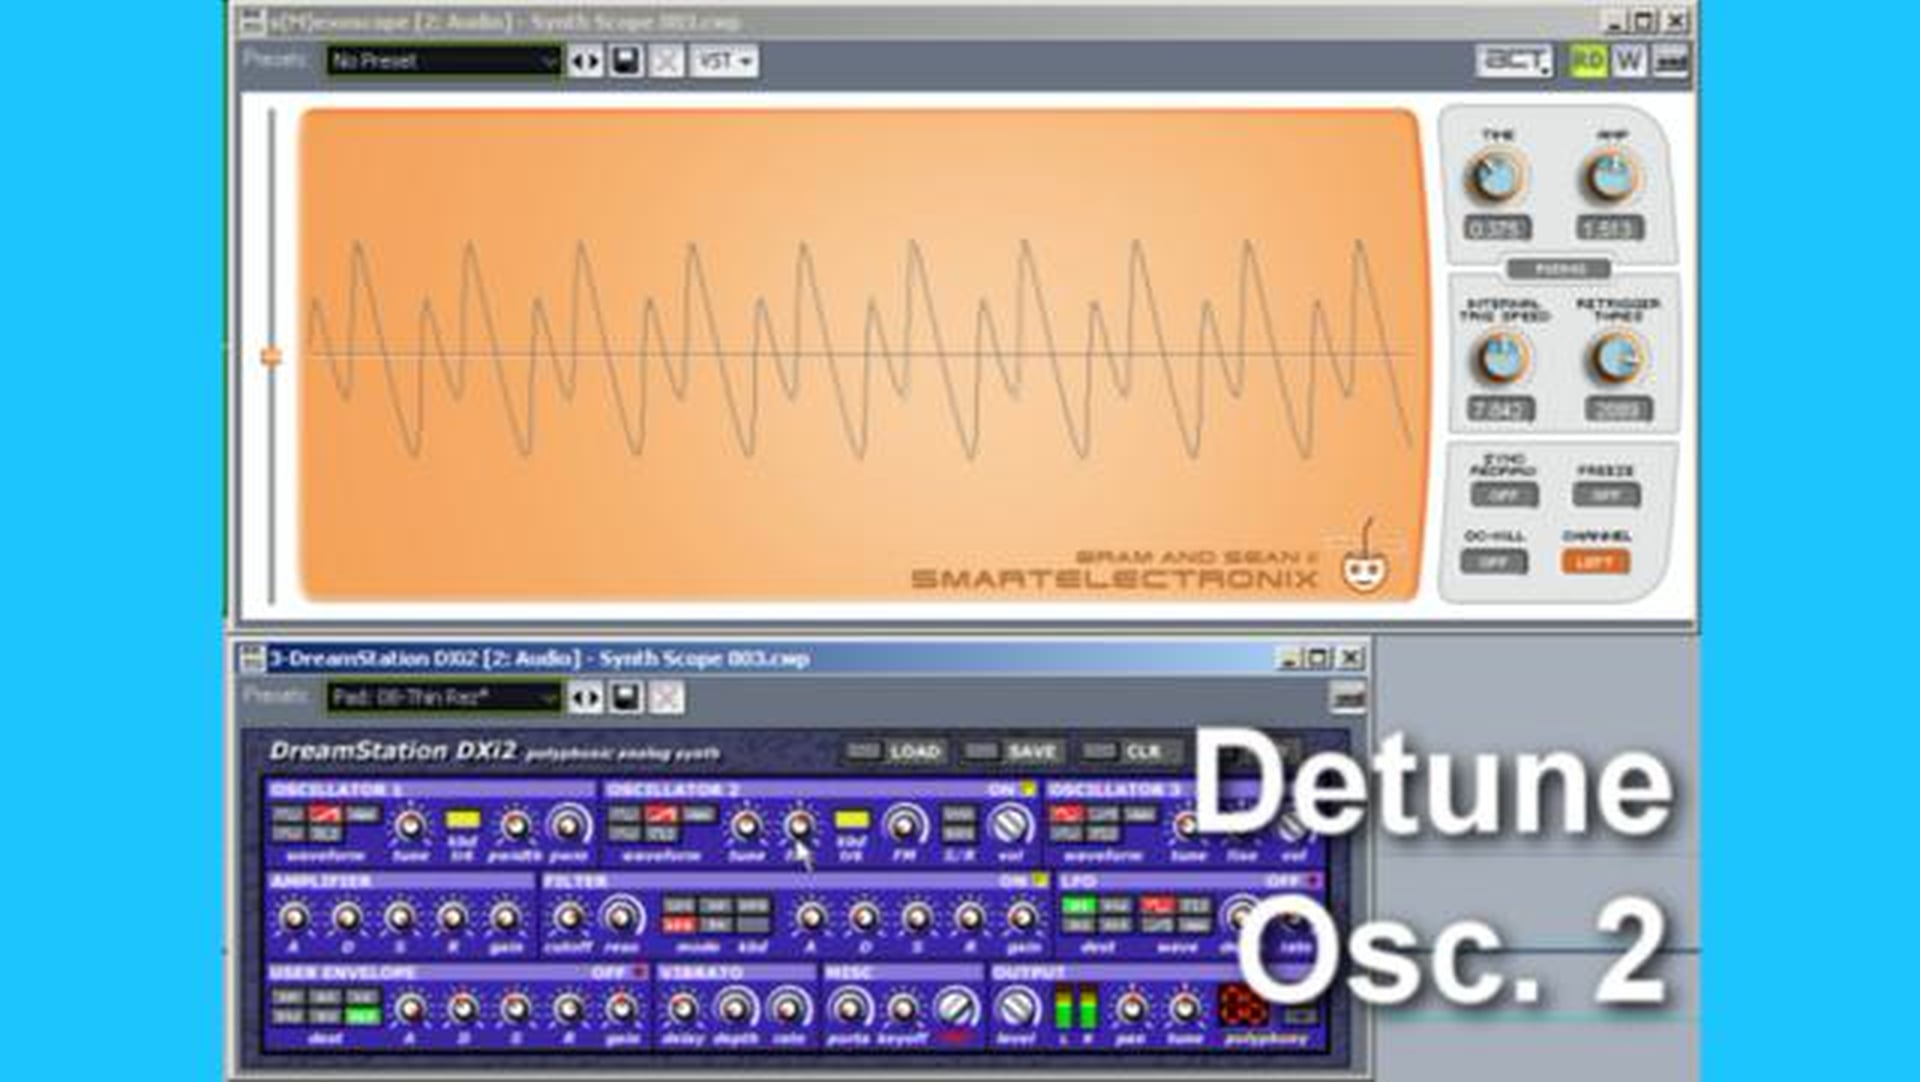 How to program analog synthesizers